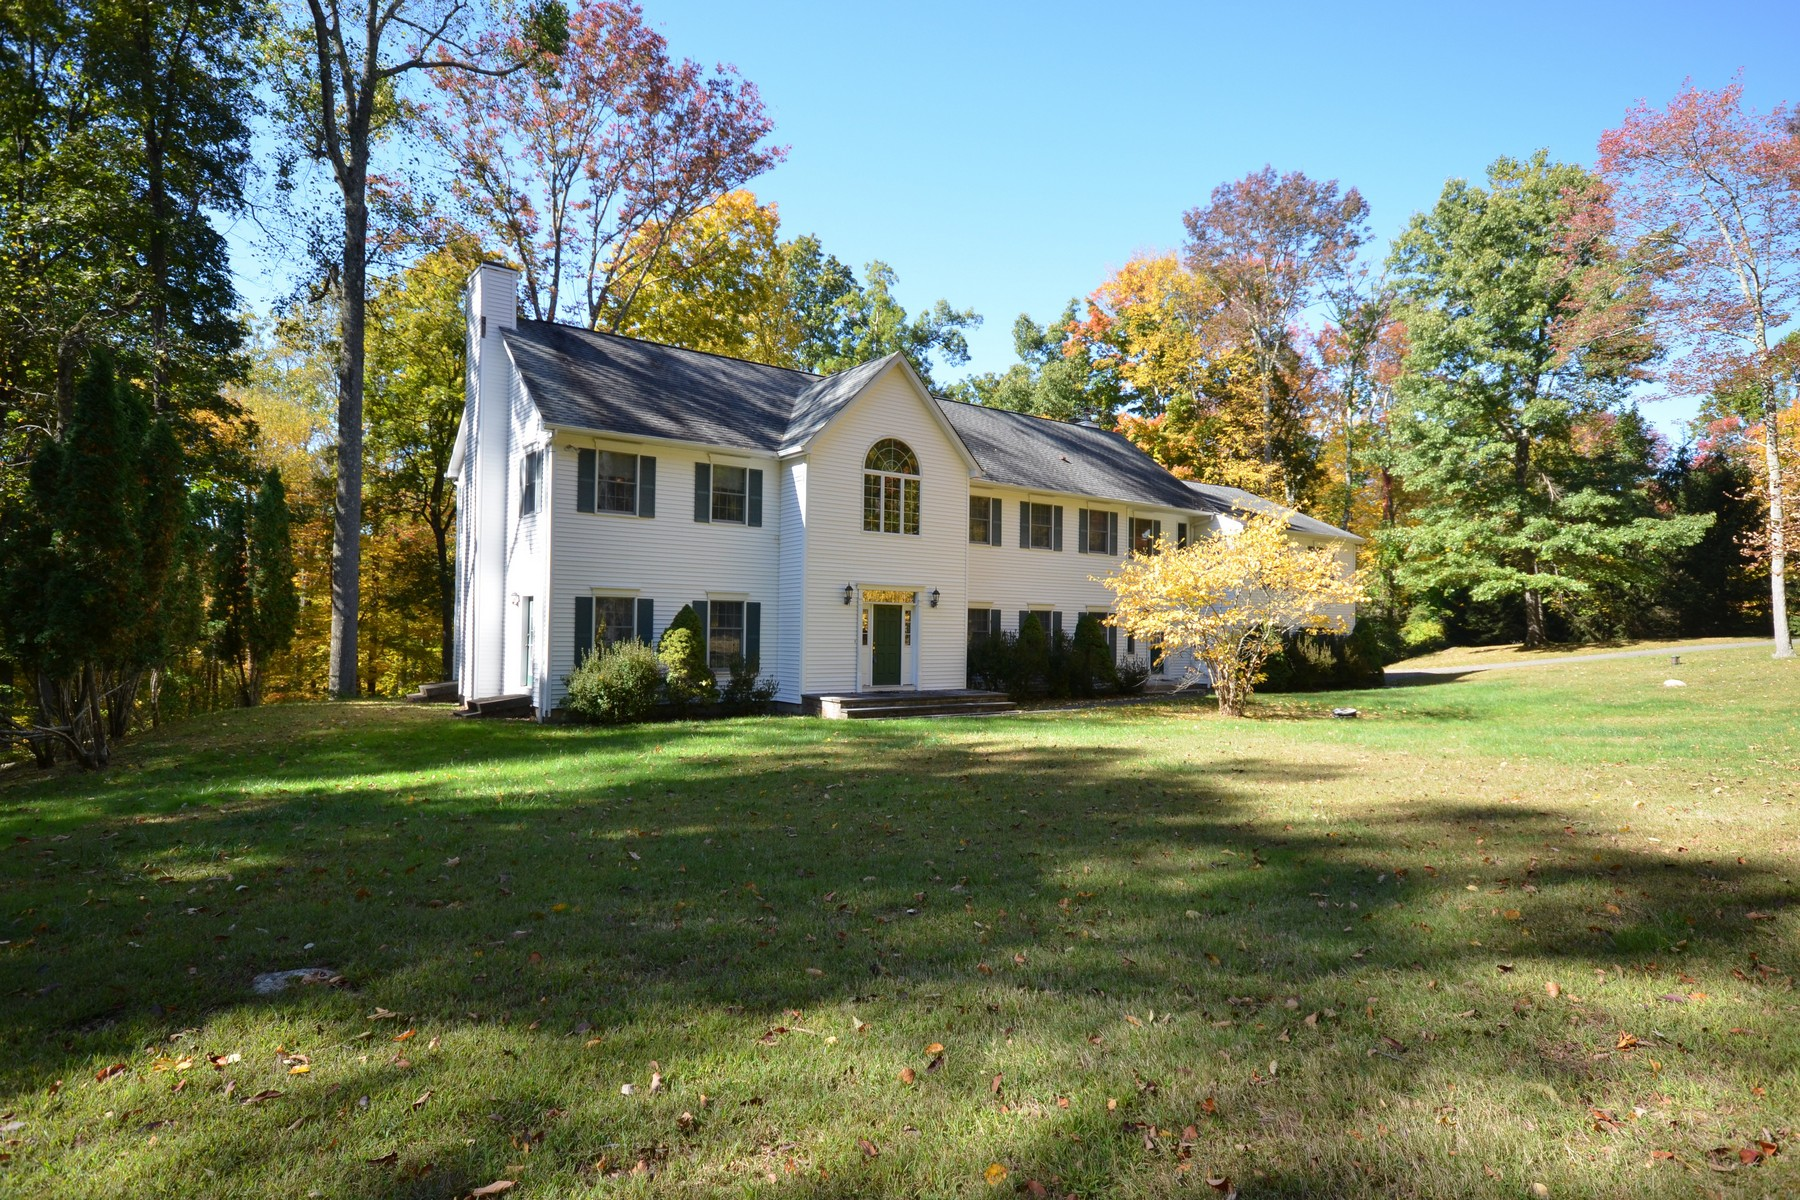 Single Family Home for Sale at Desirable Redding Center Location 50 Deer Hill Road Redding, Connecticut 06896 United States